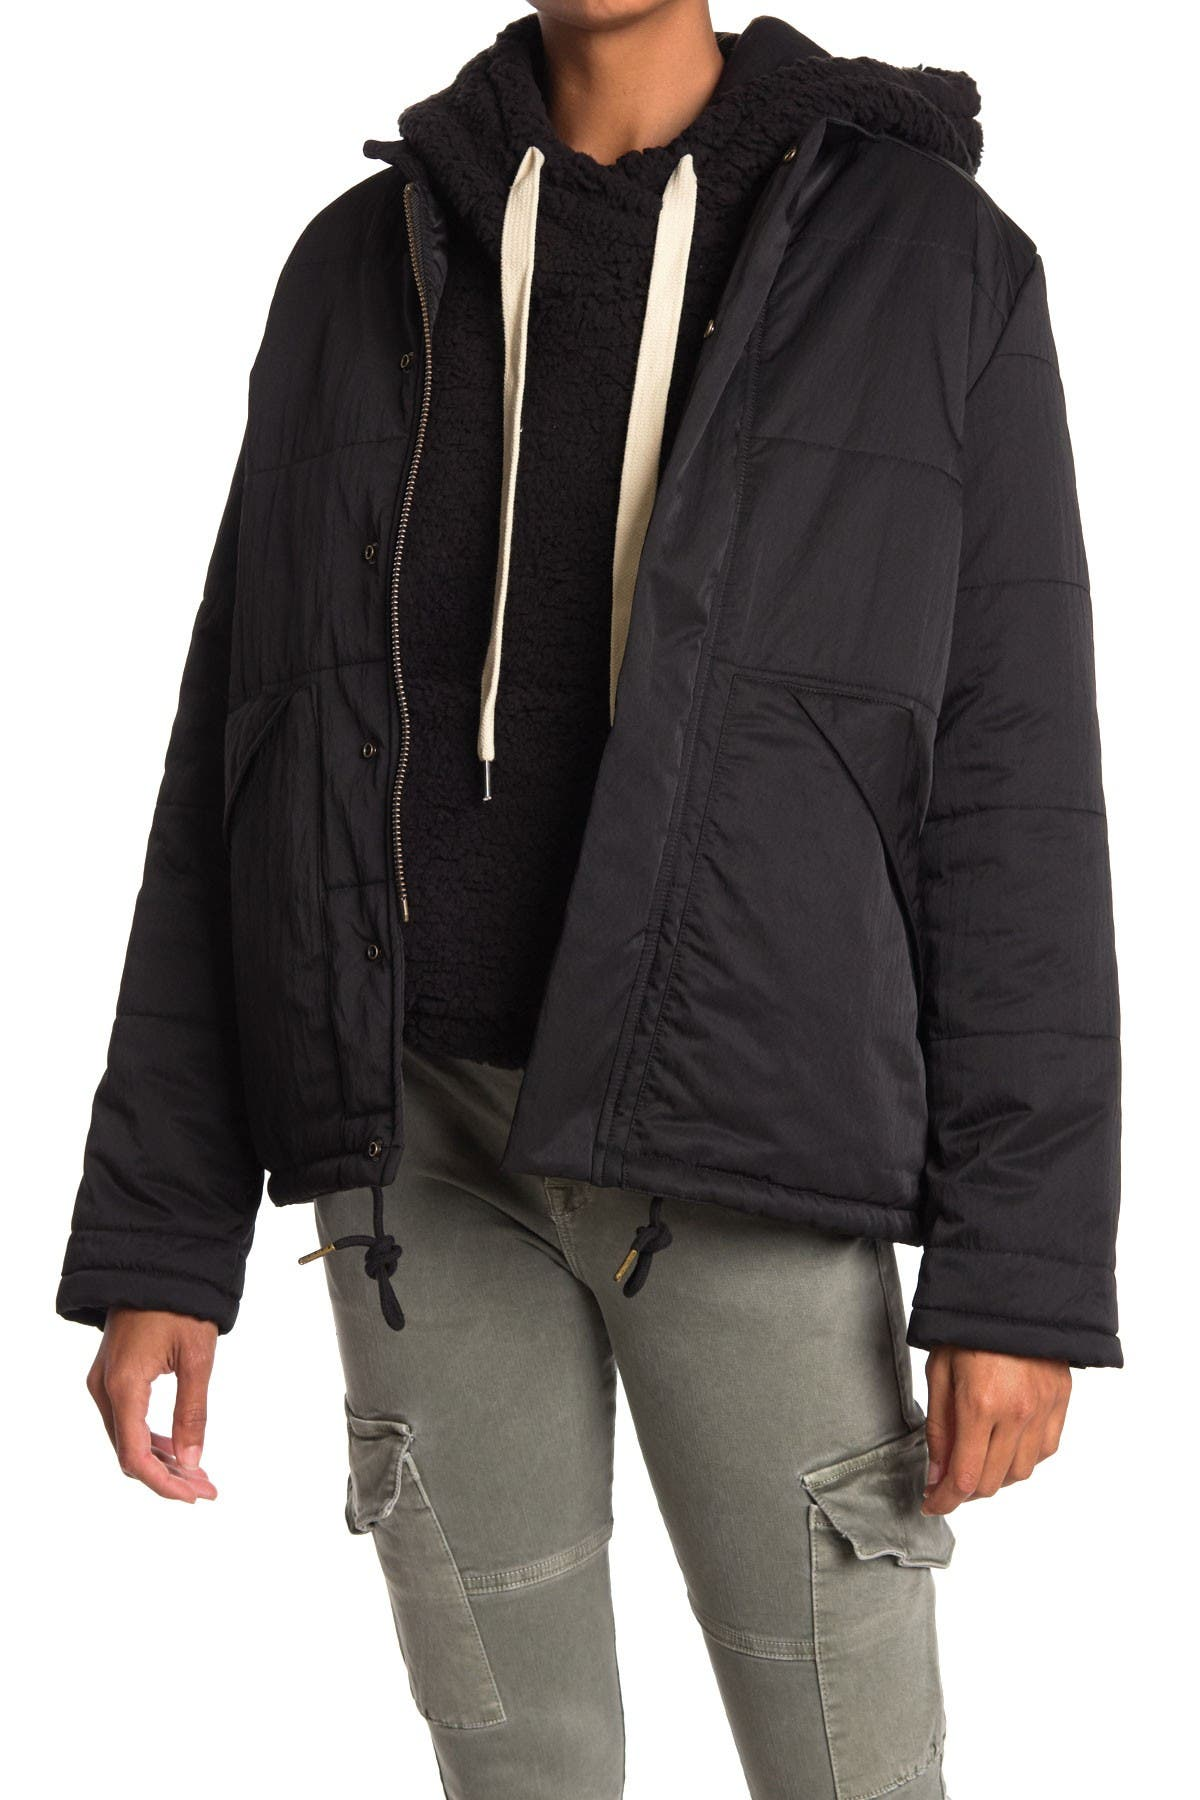 Image of NSF CLOTHING Ace Patch Pocket Puffer Jacket